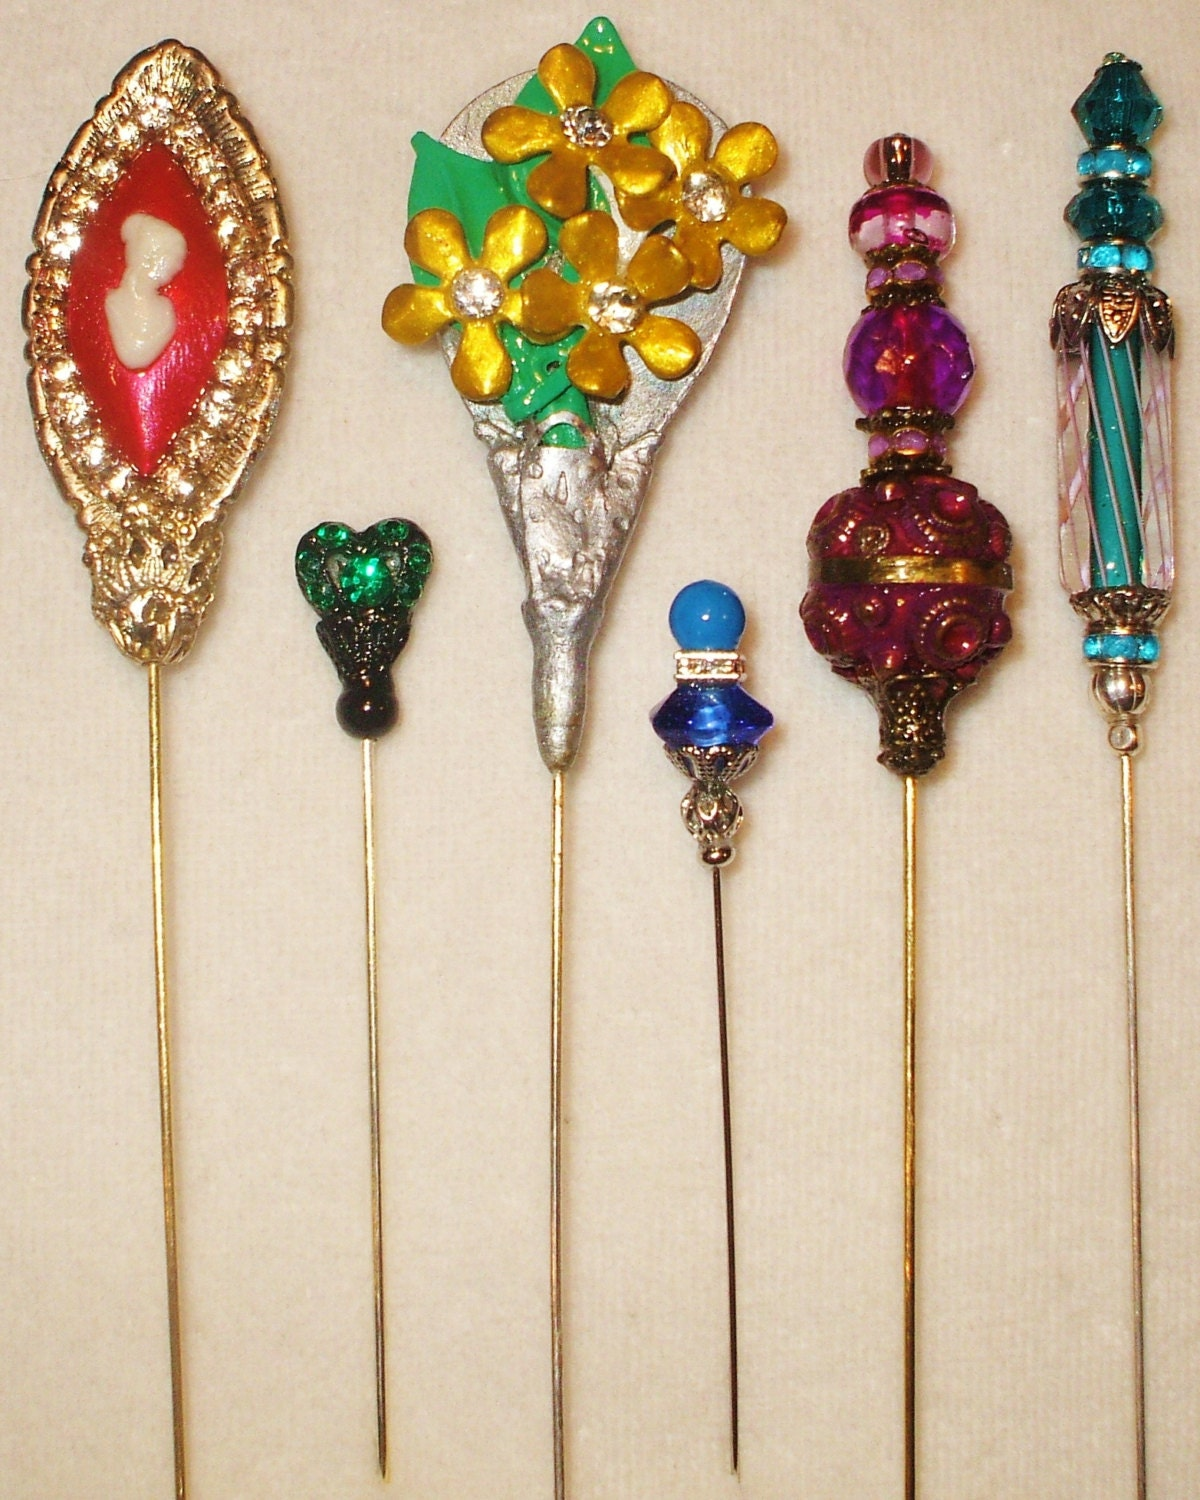 Victorian Hat Pins For The Old West Reenactor Or Steampunk: 6 Antique Style Victorian Hat Pins With By